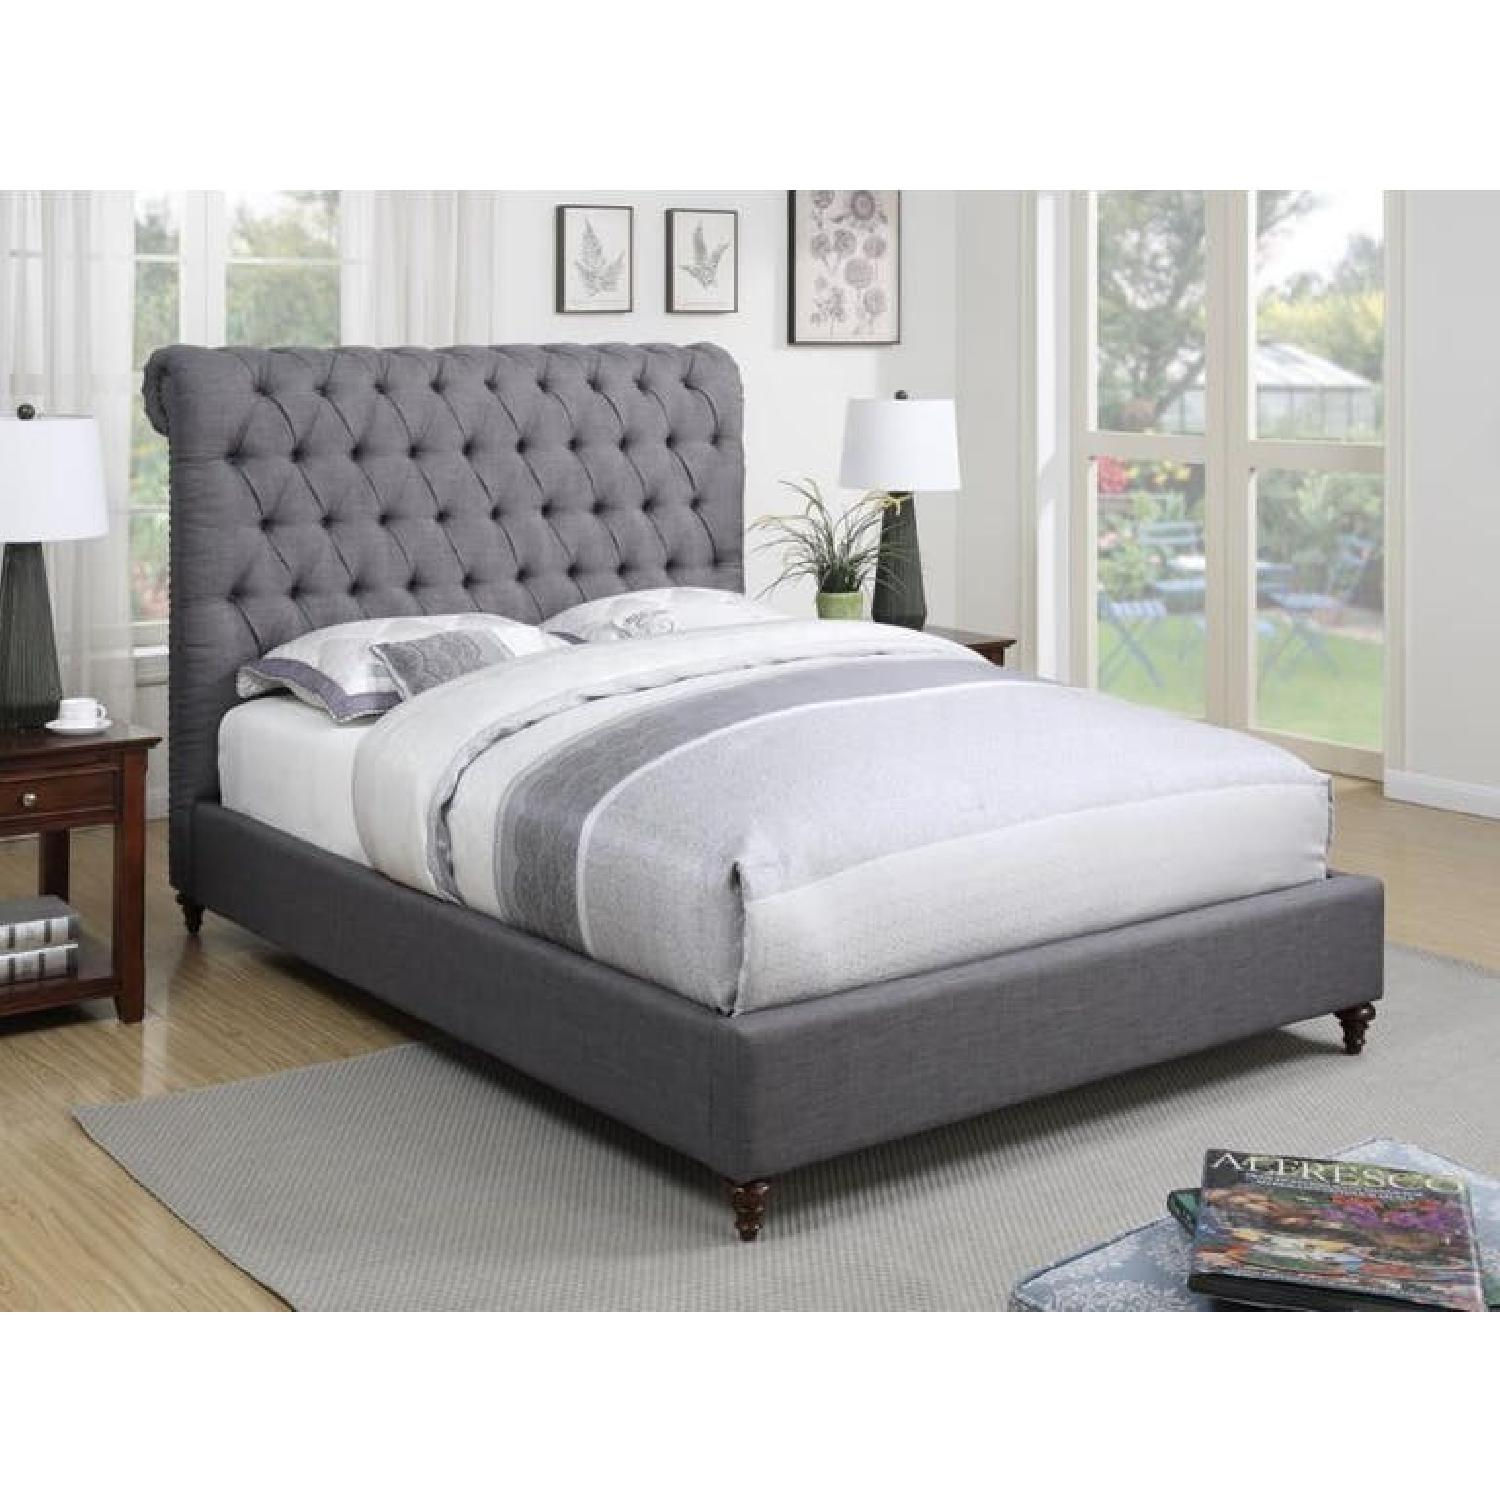 Coaster Chesterfield Style King Bed Upholstered in Grey-1